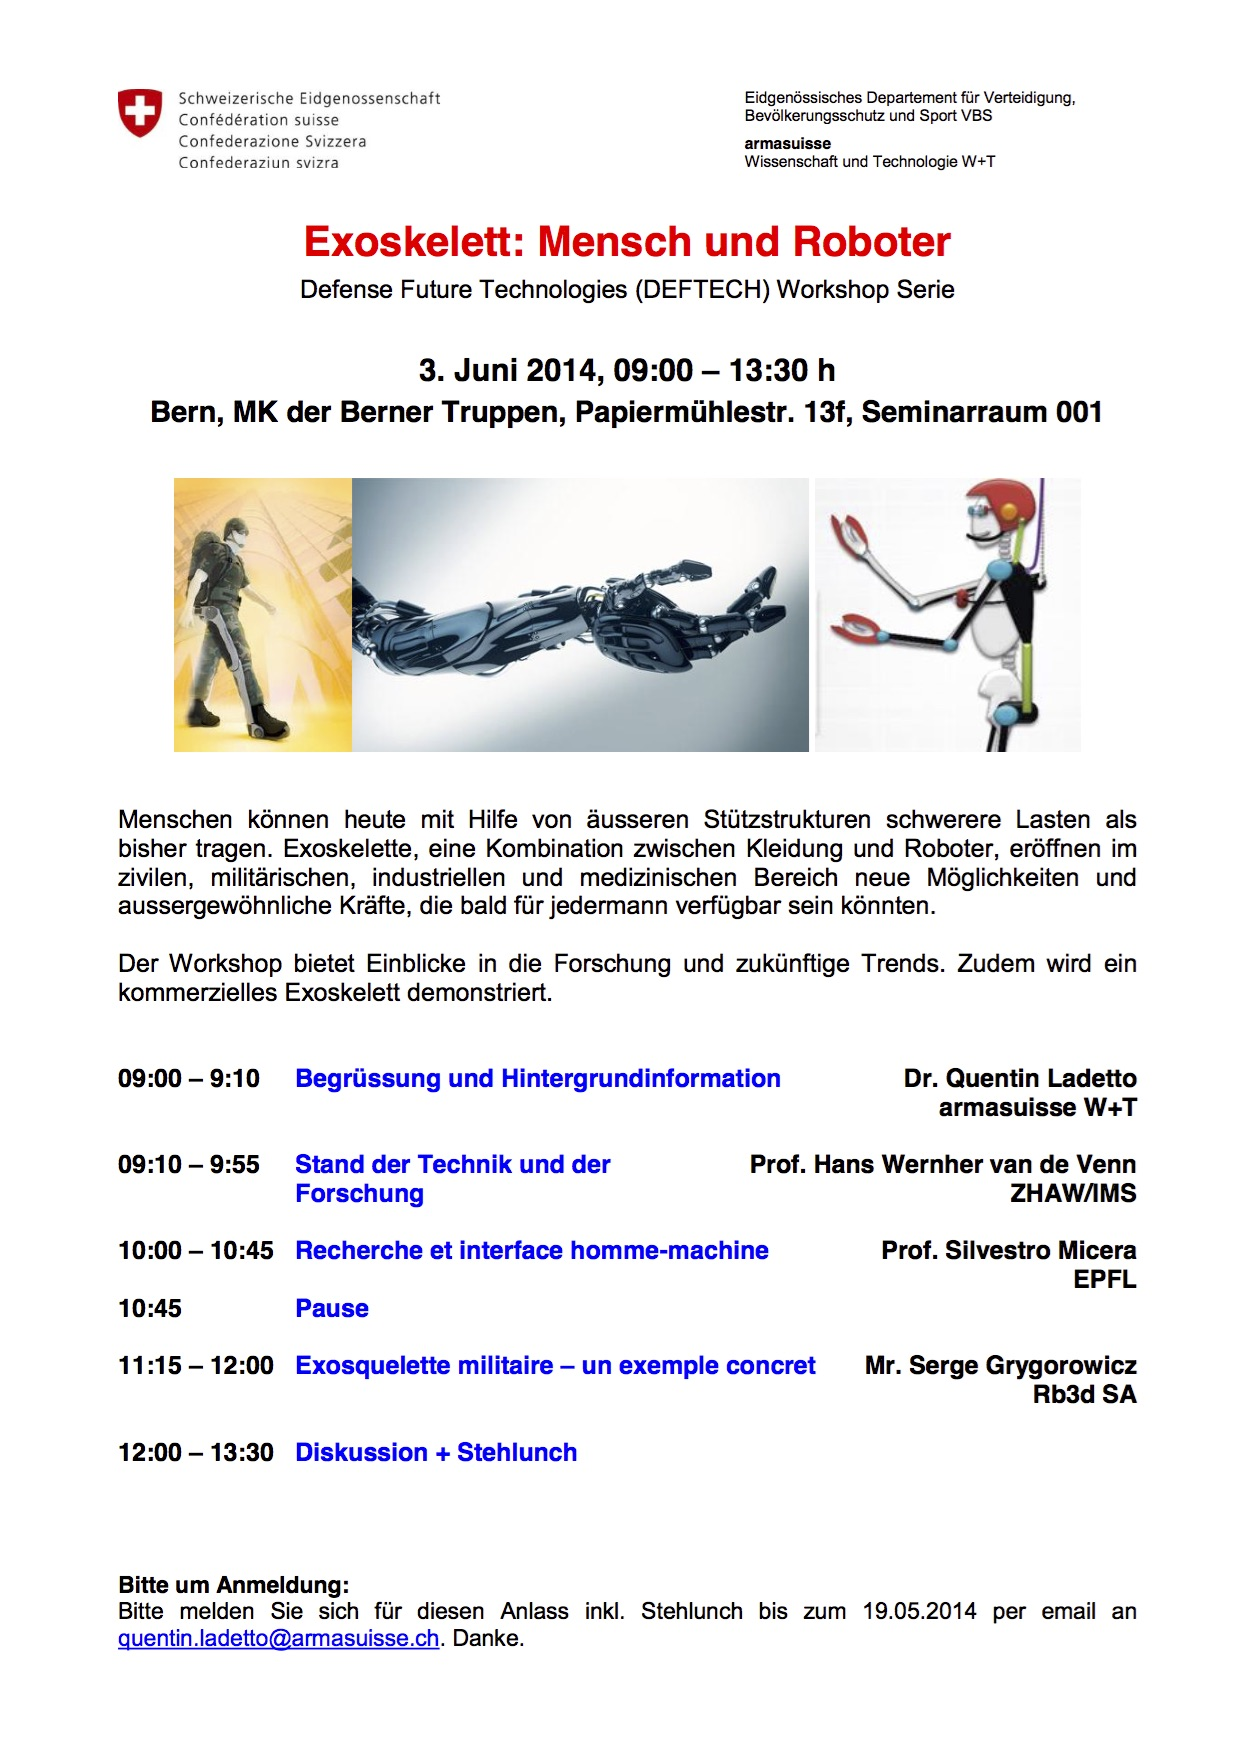 DEFTECH_Workshop_Exosquelettes_03062014